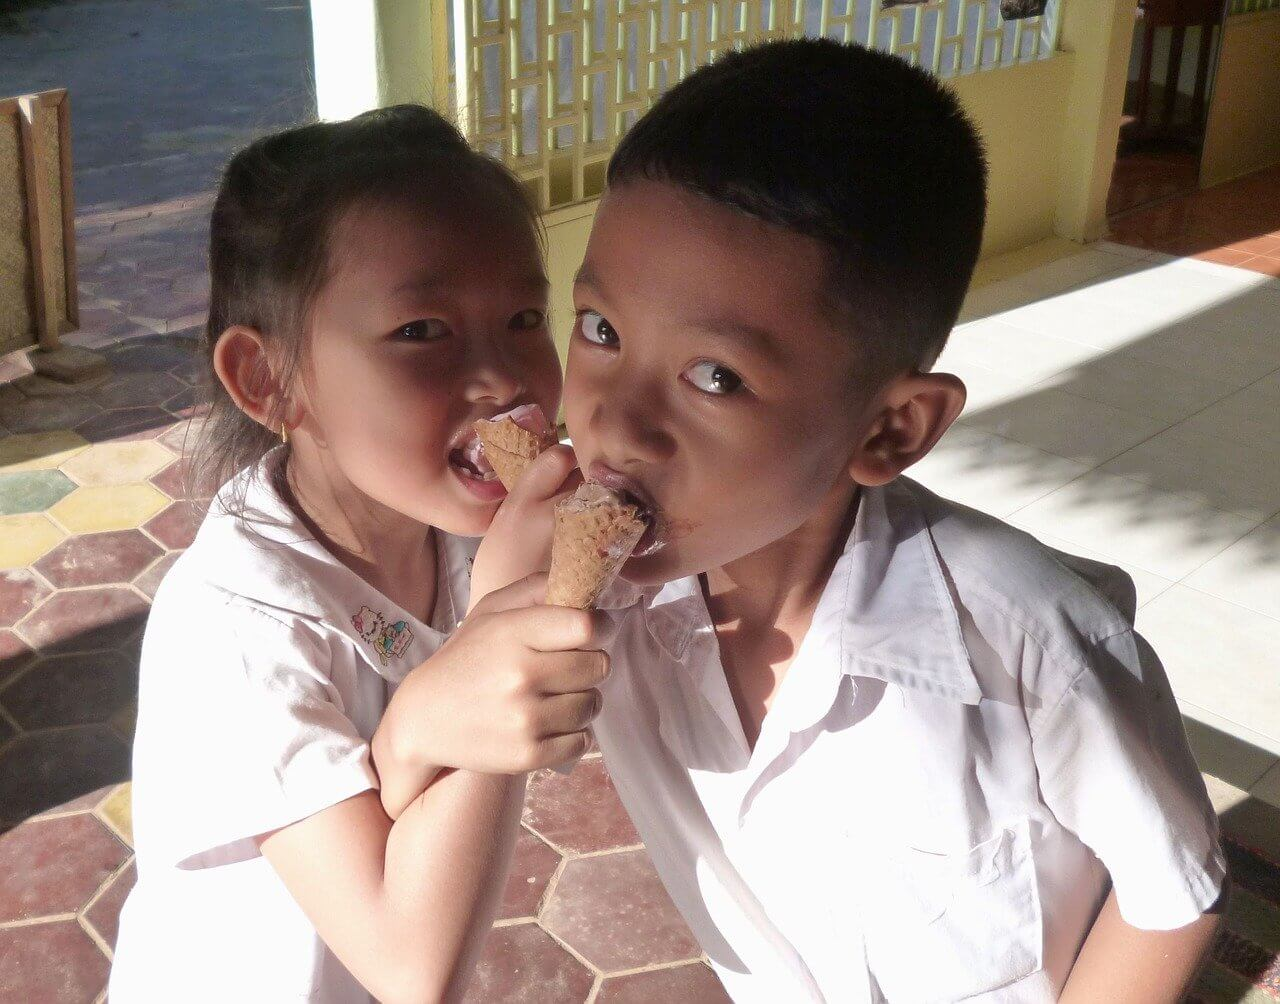 Two schoolkids in Cambodia eating ice-cream after their English lesson